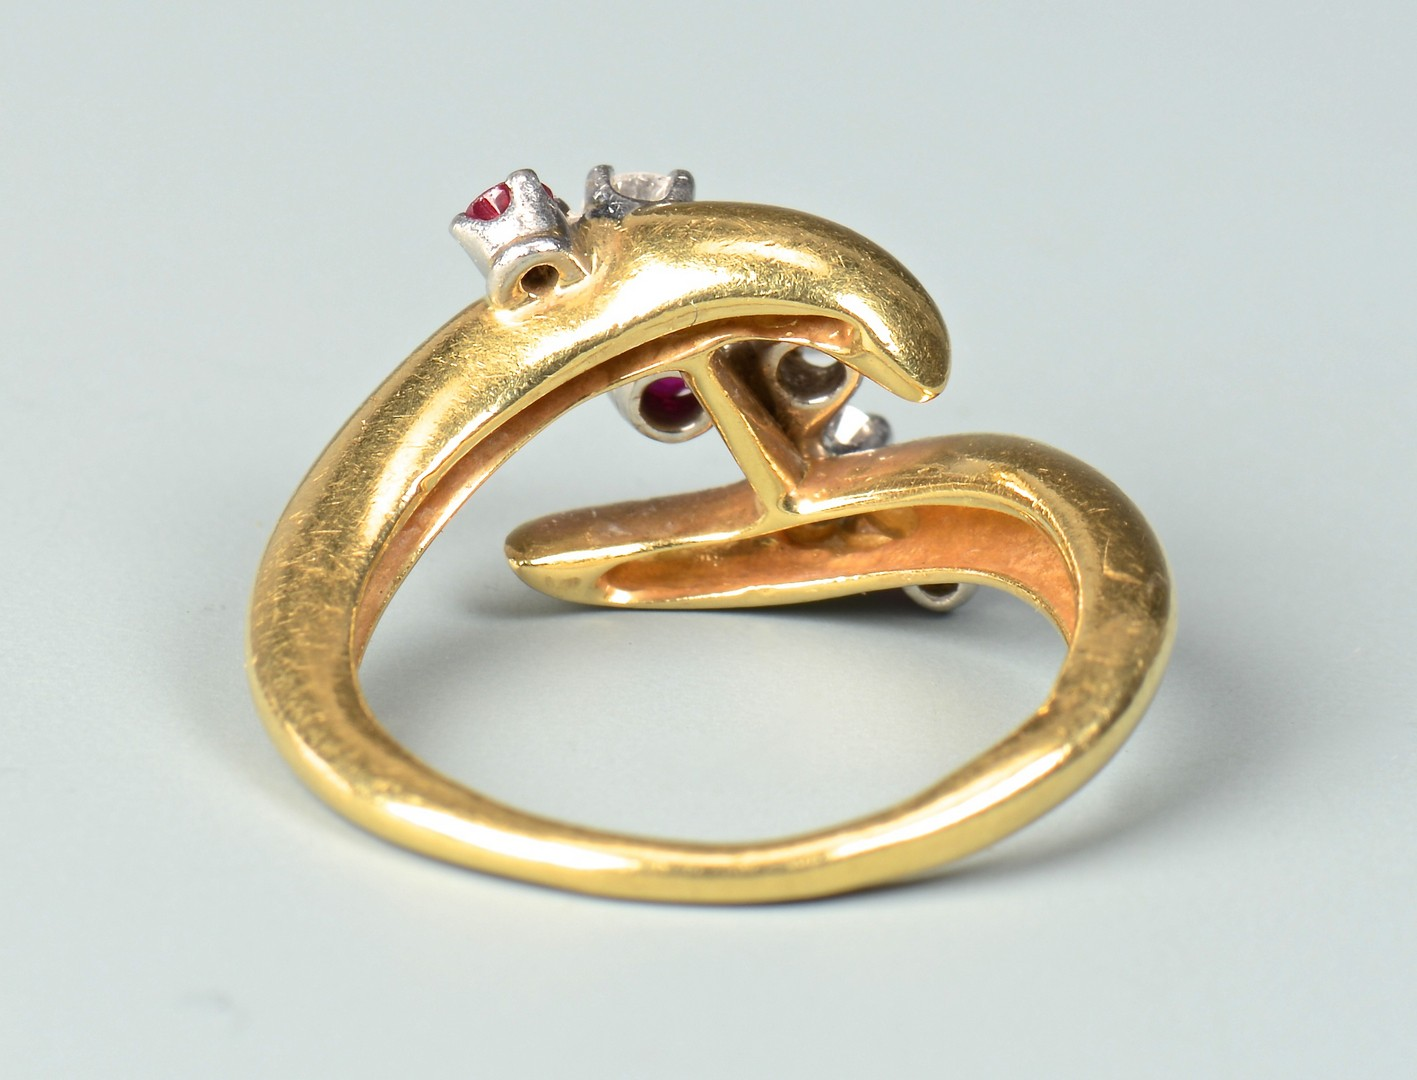 Lot 347: 18K yellow gold/plat ruby and diamond ring